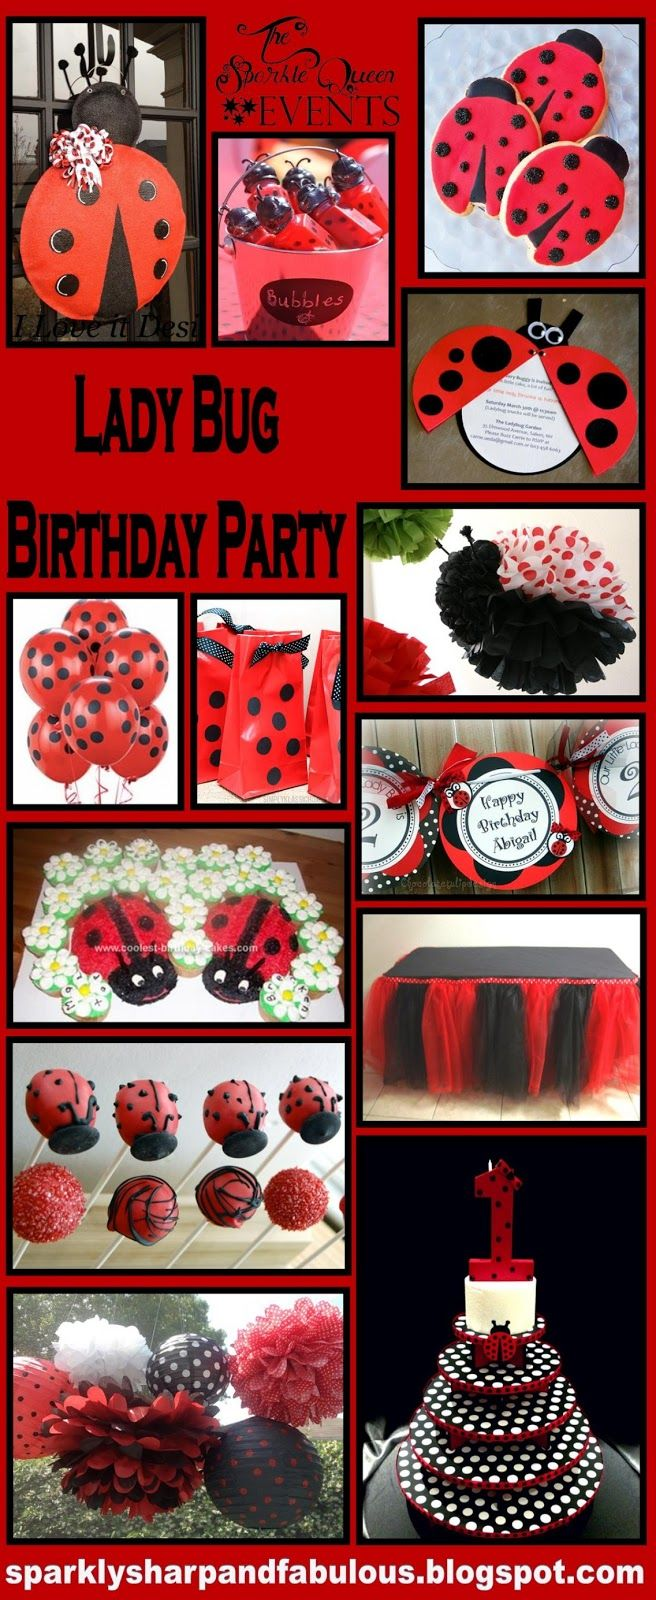 Check out this Blog for Birthday ideas...she does all the footwork for you!  Chocolatetulipdesign got a feature!  The Sparkle Queen: Lady Bug Birthday Party Ideas